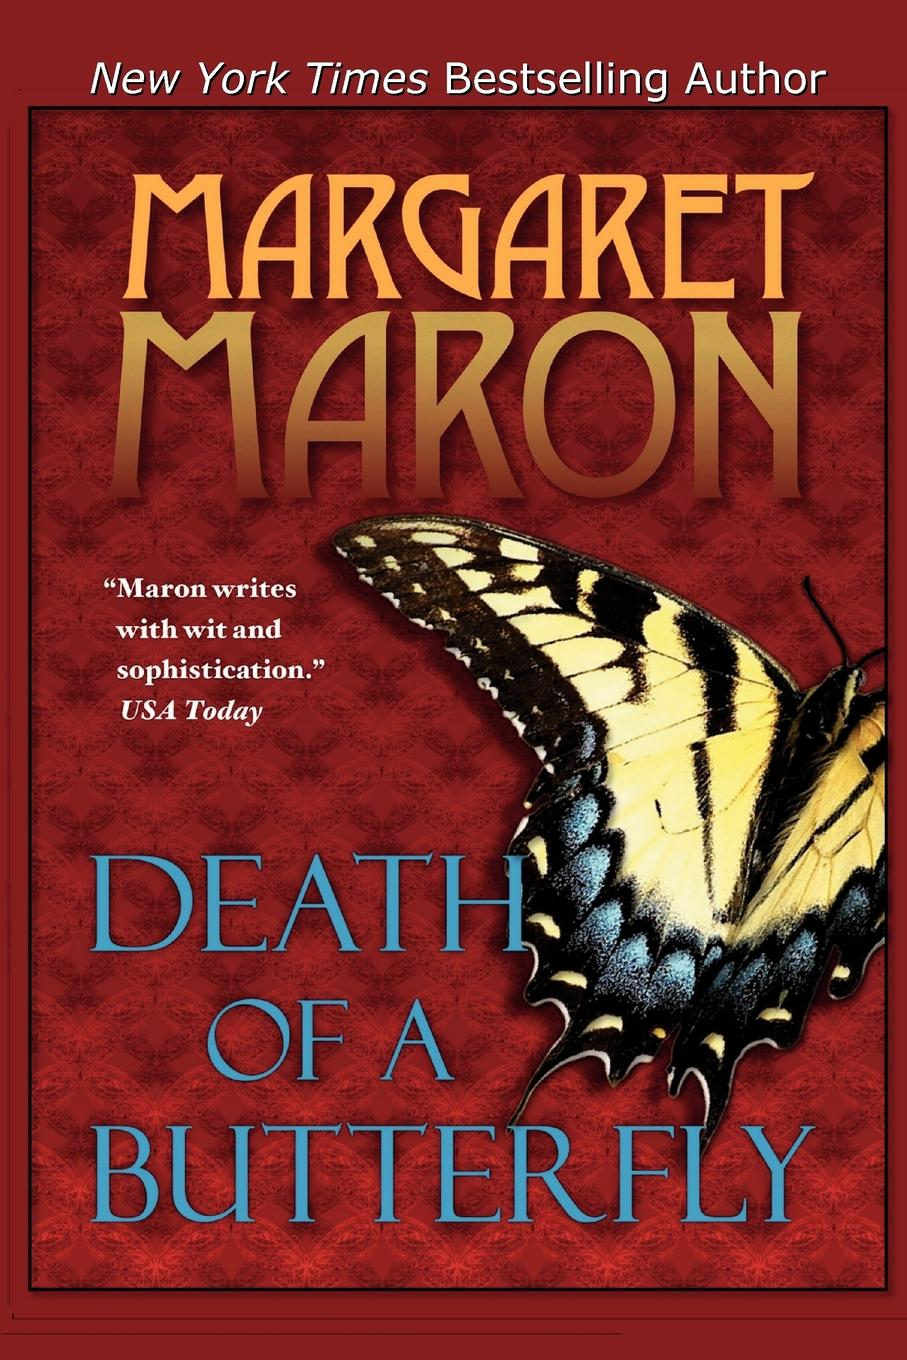 Margaret Maron Death of a Butterfly